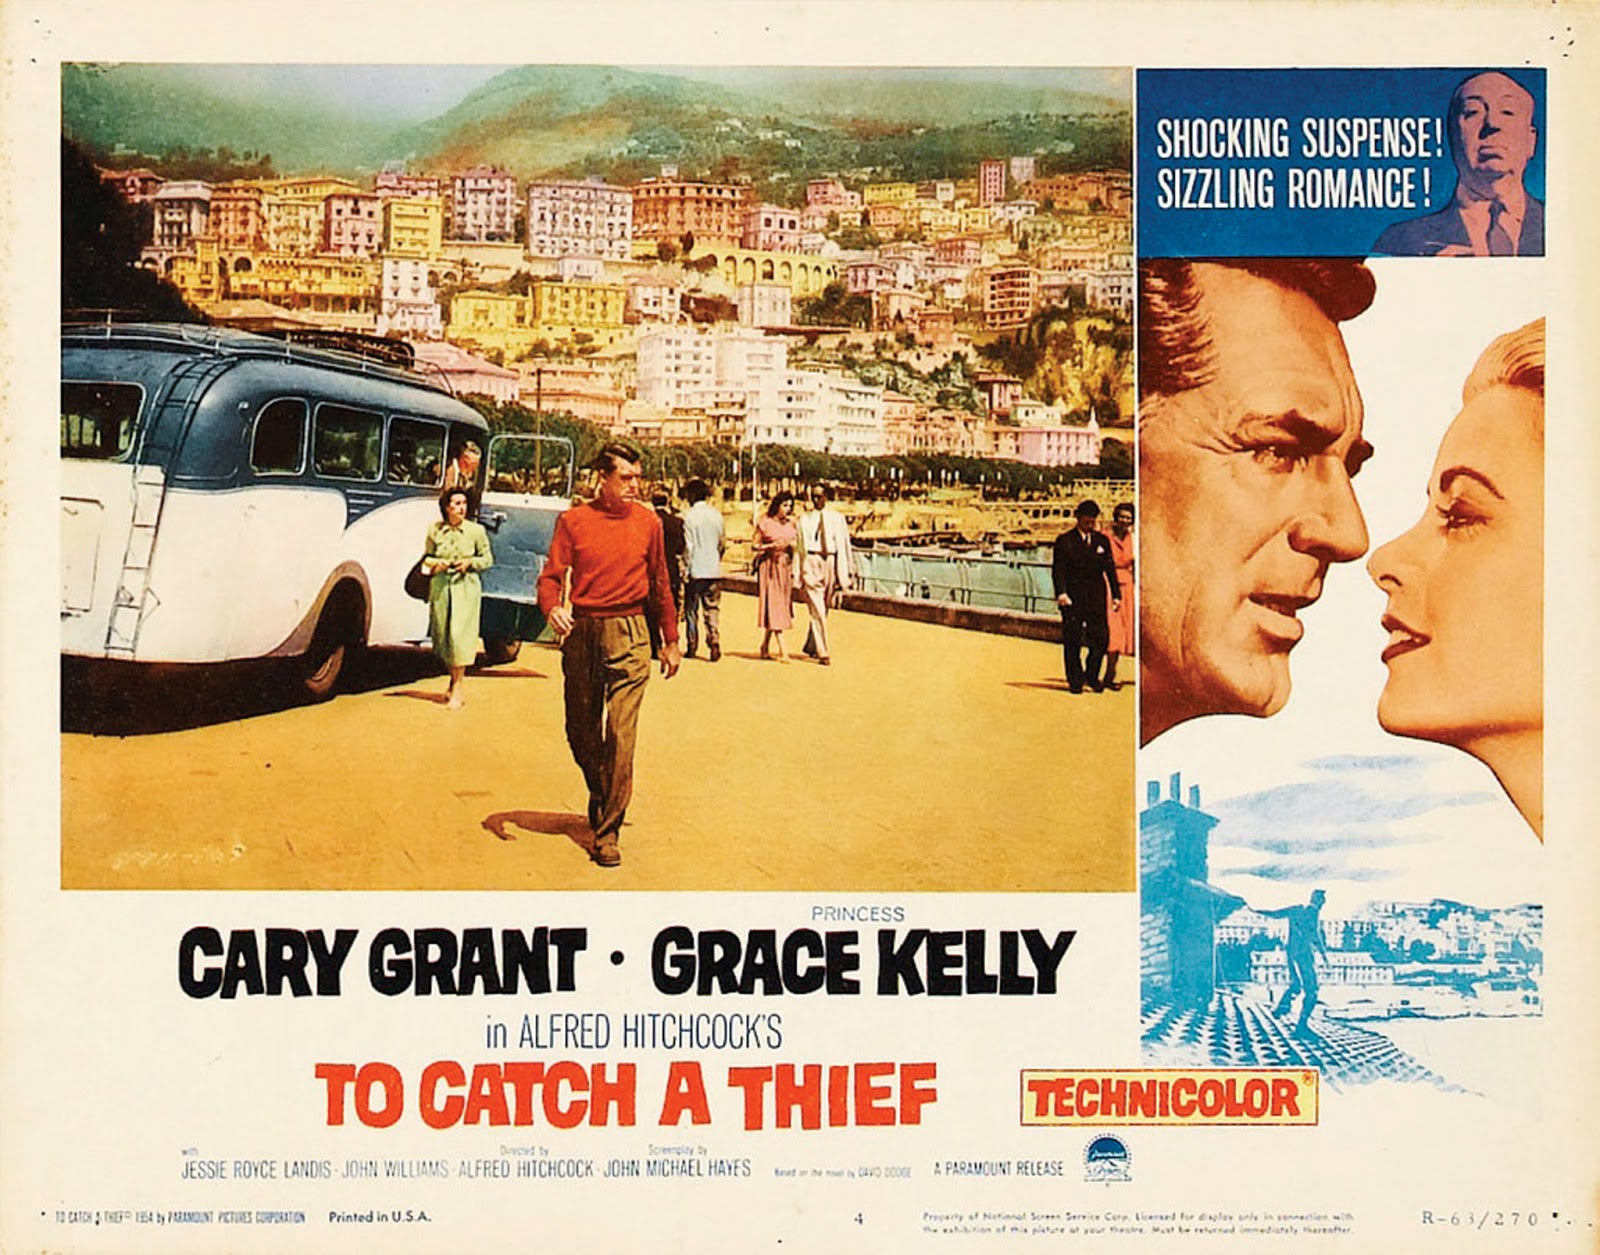 Bobby knight throwing chair gif - To Catch A Thief Is A 1955 Romantic Thriller Directed By Alfred Hitchcock From A Screenplay By John Michael Hayes Based On The 1952 Novel Of The Same Name